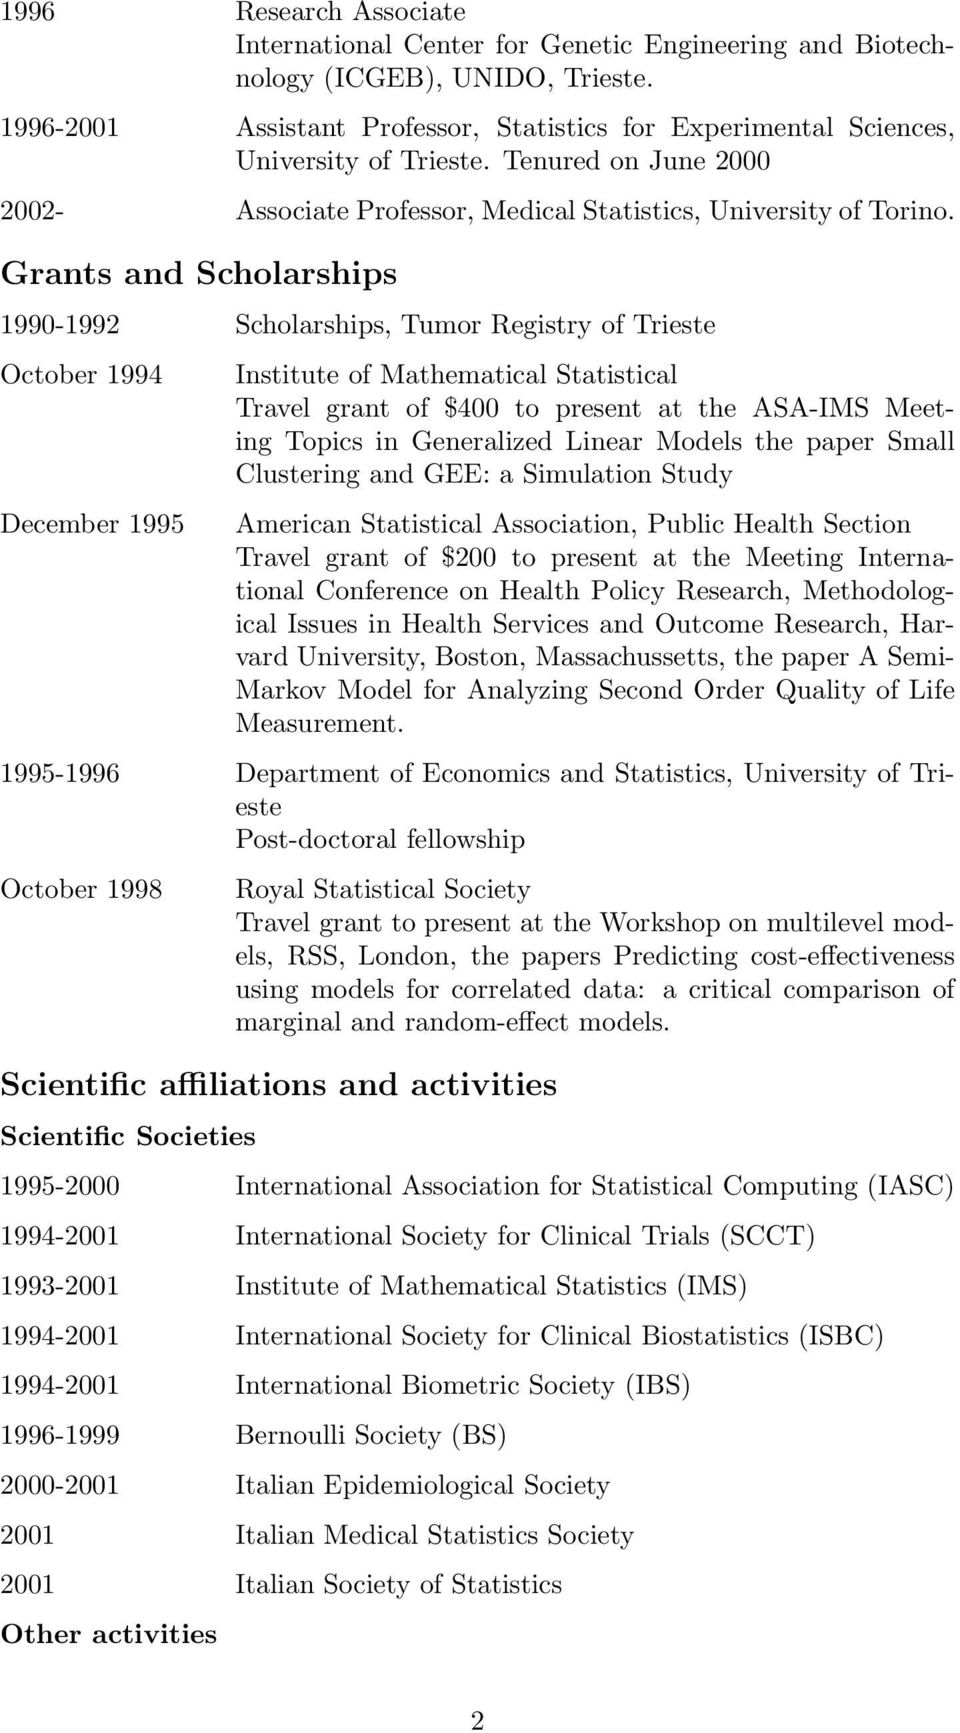 Grants and Scholarships 1990-1992 Scholarships, Tumor Registry of Trieste October 1994 December 1995 Institute of Mathematical Statistical Travel grant of $400 to present at the ASA-IMS Meeting